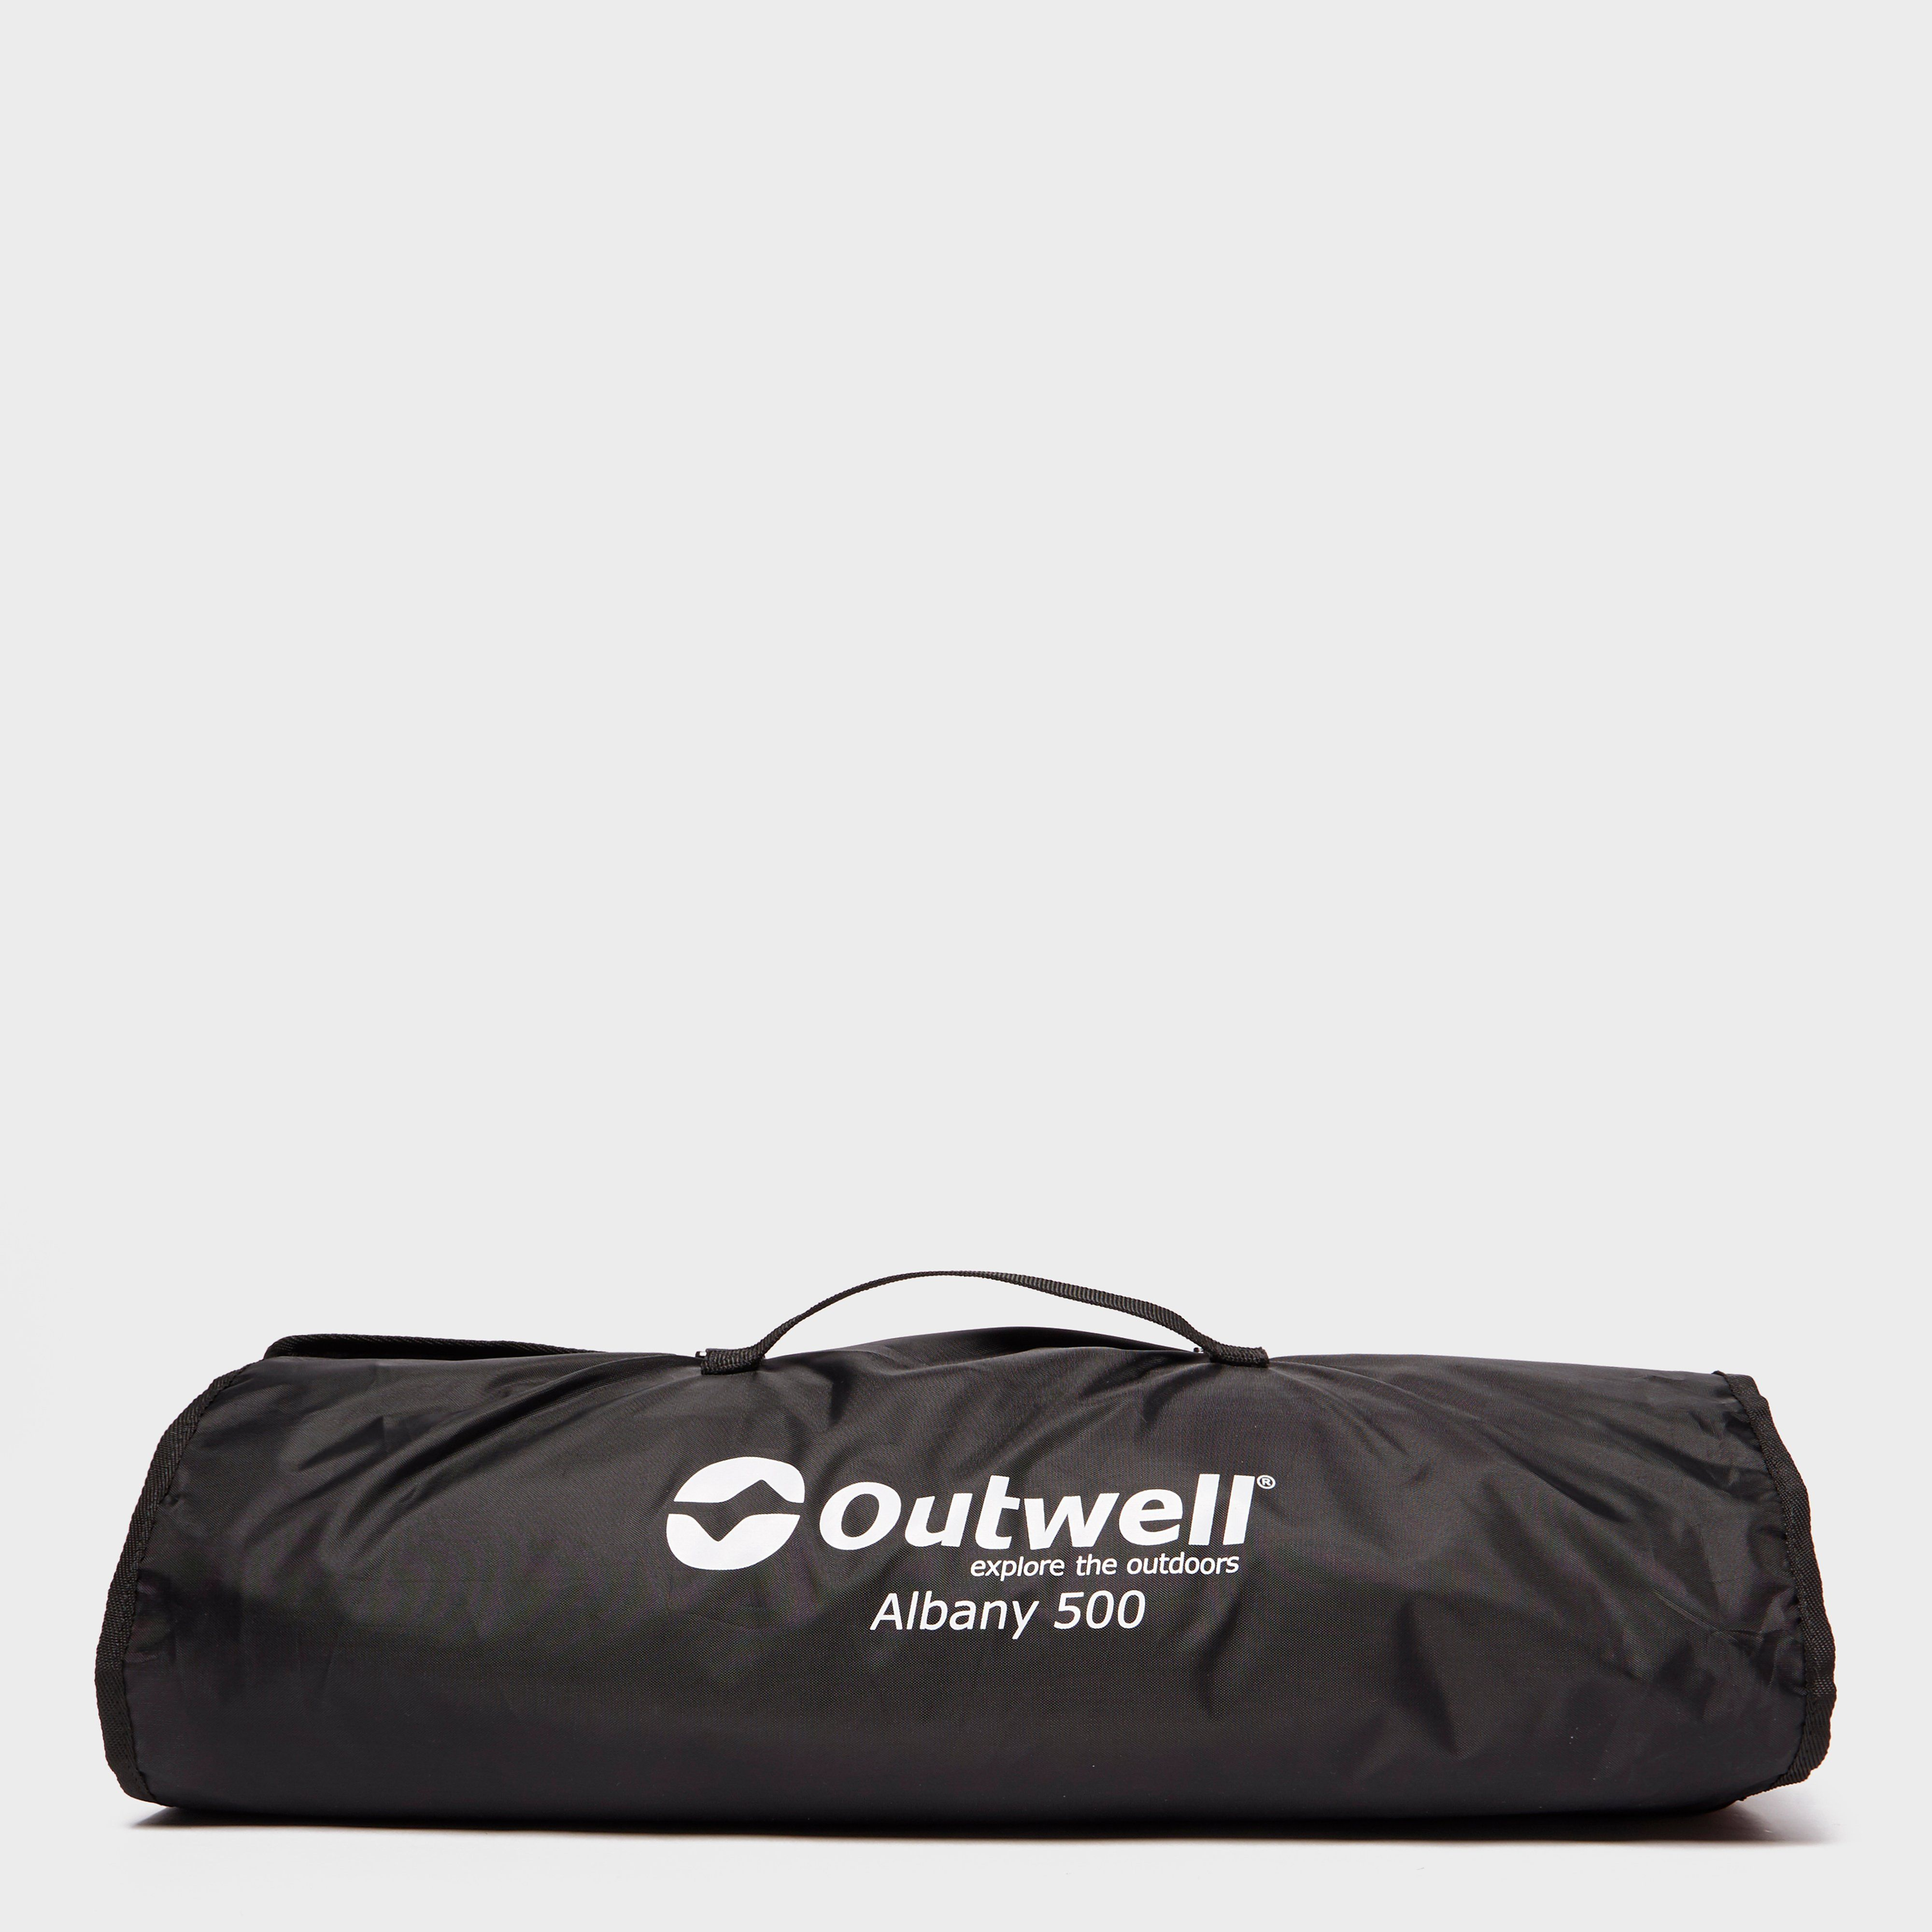 OUTWELL Albany 500 Carpet